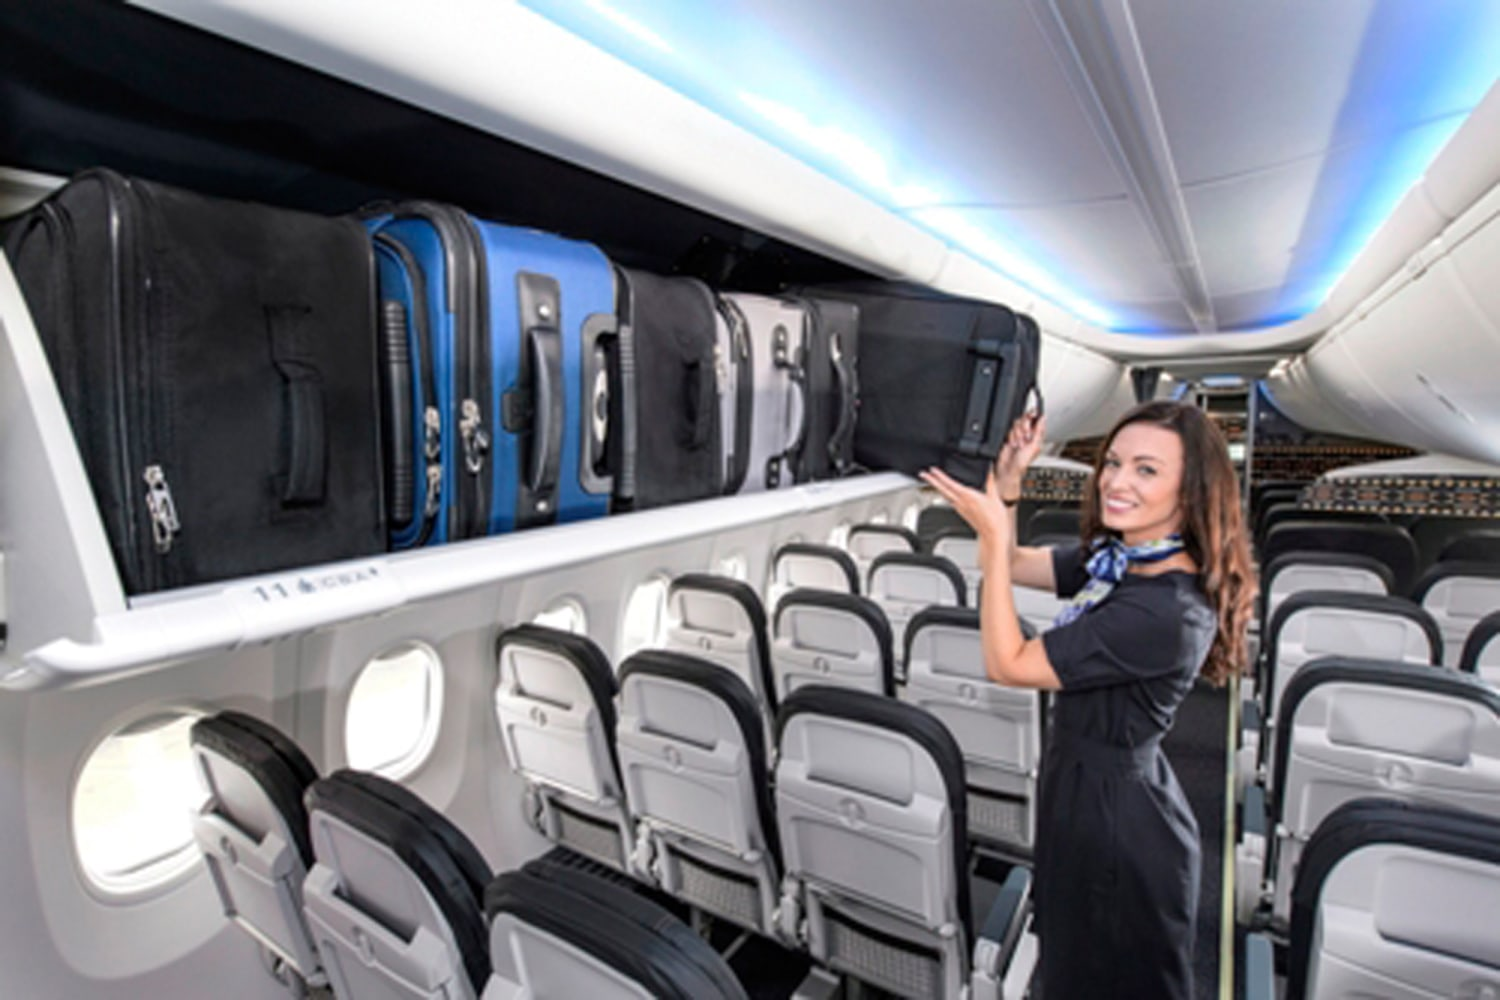 Boeing Outfitting Planes With More Bin Space Less